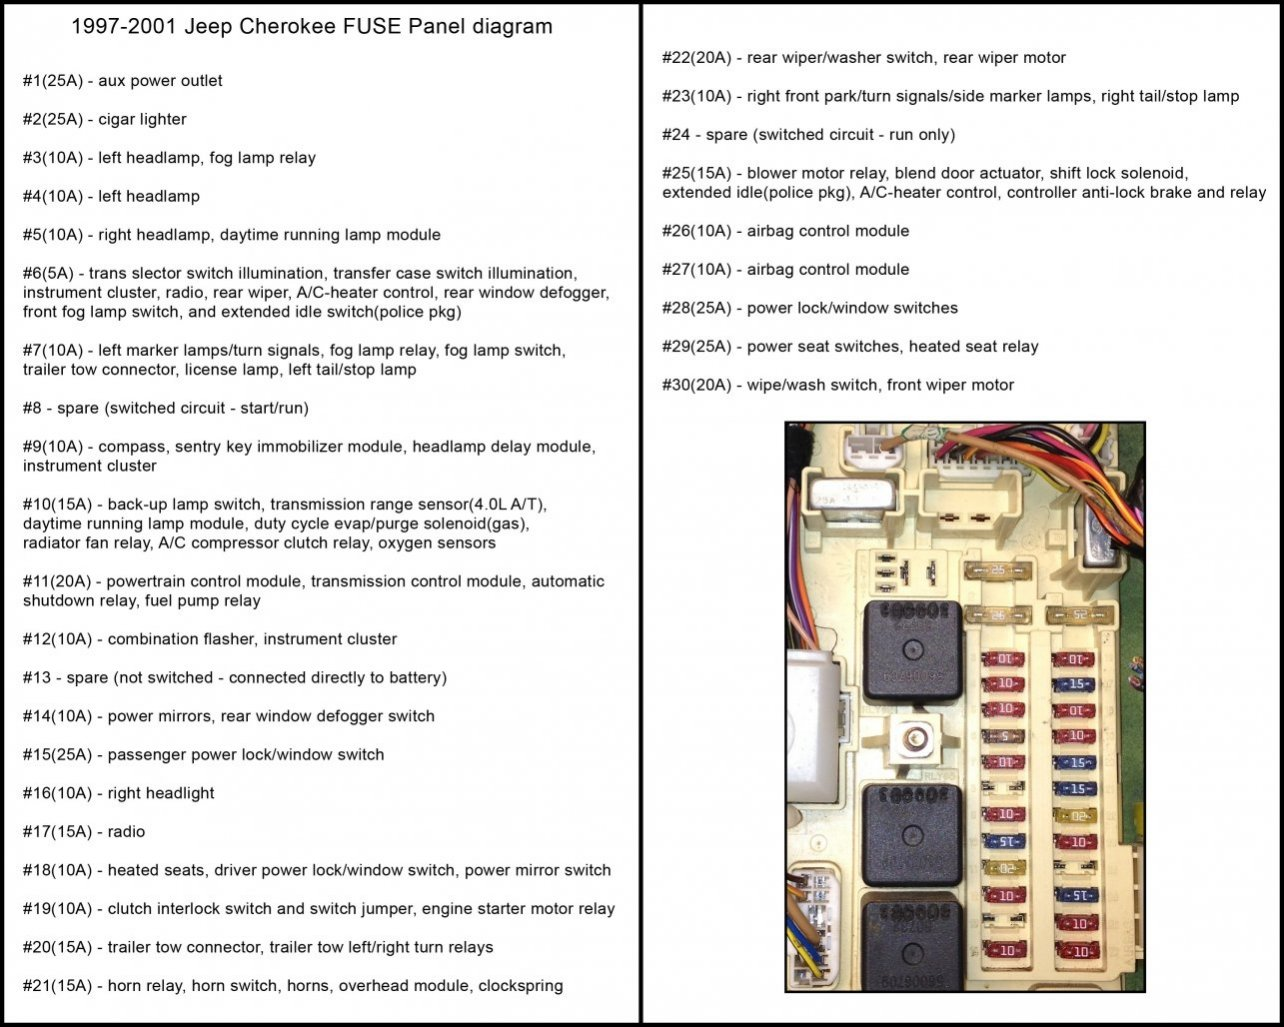 hight resolution of cabin fuse panel diagram for 2000 xj sport jeep cherokee forum 2000 jag s type 2000 xj fuse diagram